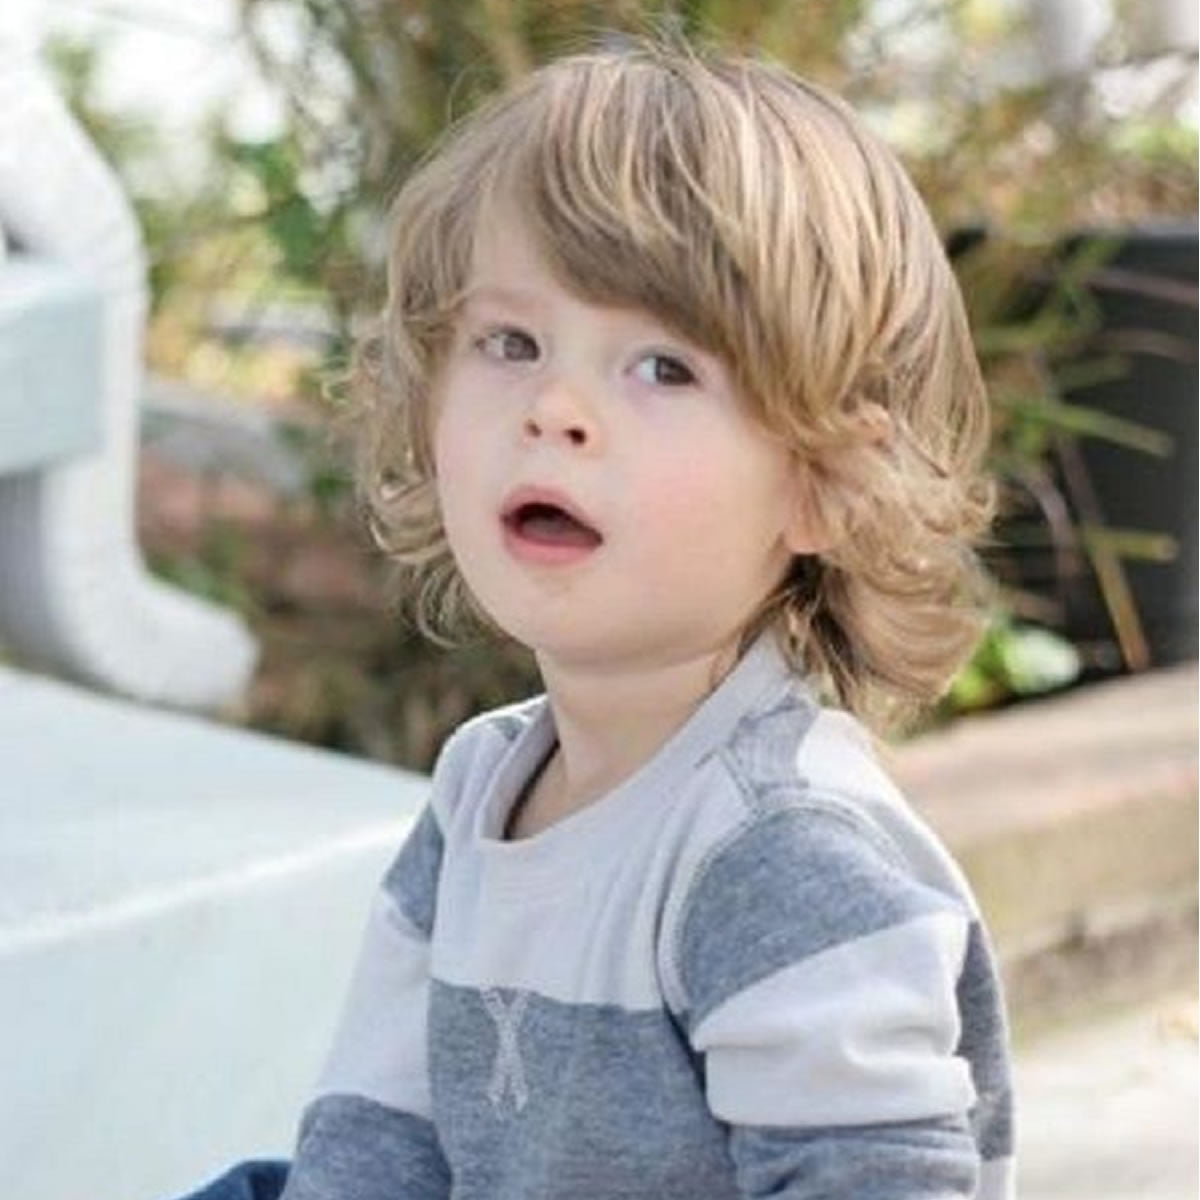 Toddler Boy Hairstyles 2018 Hairstyles